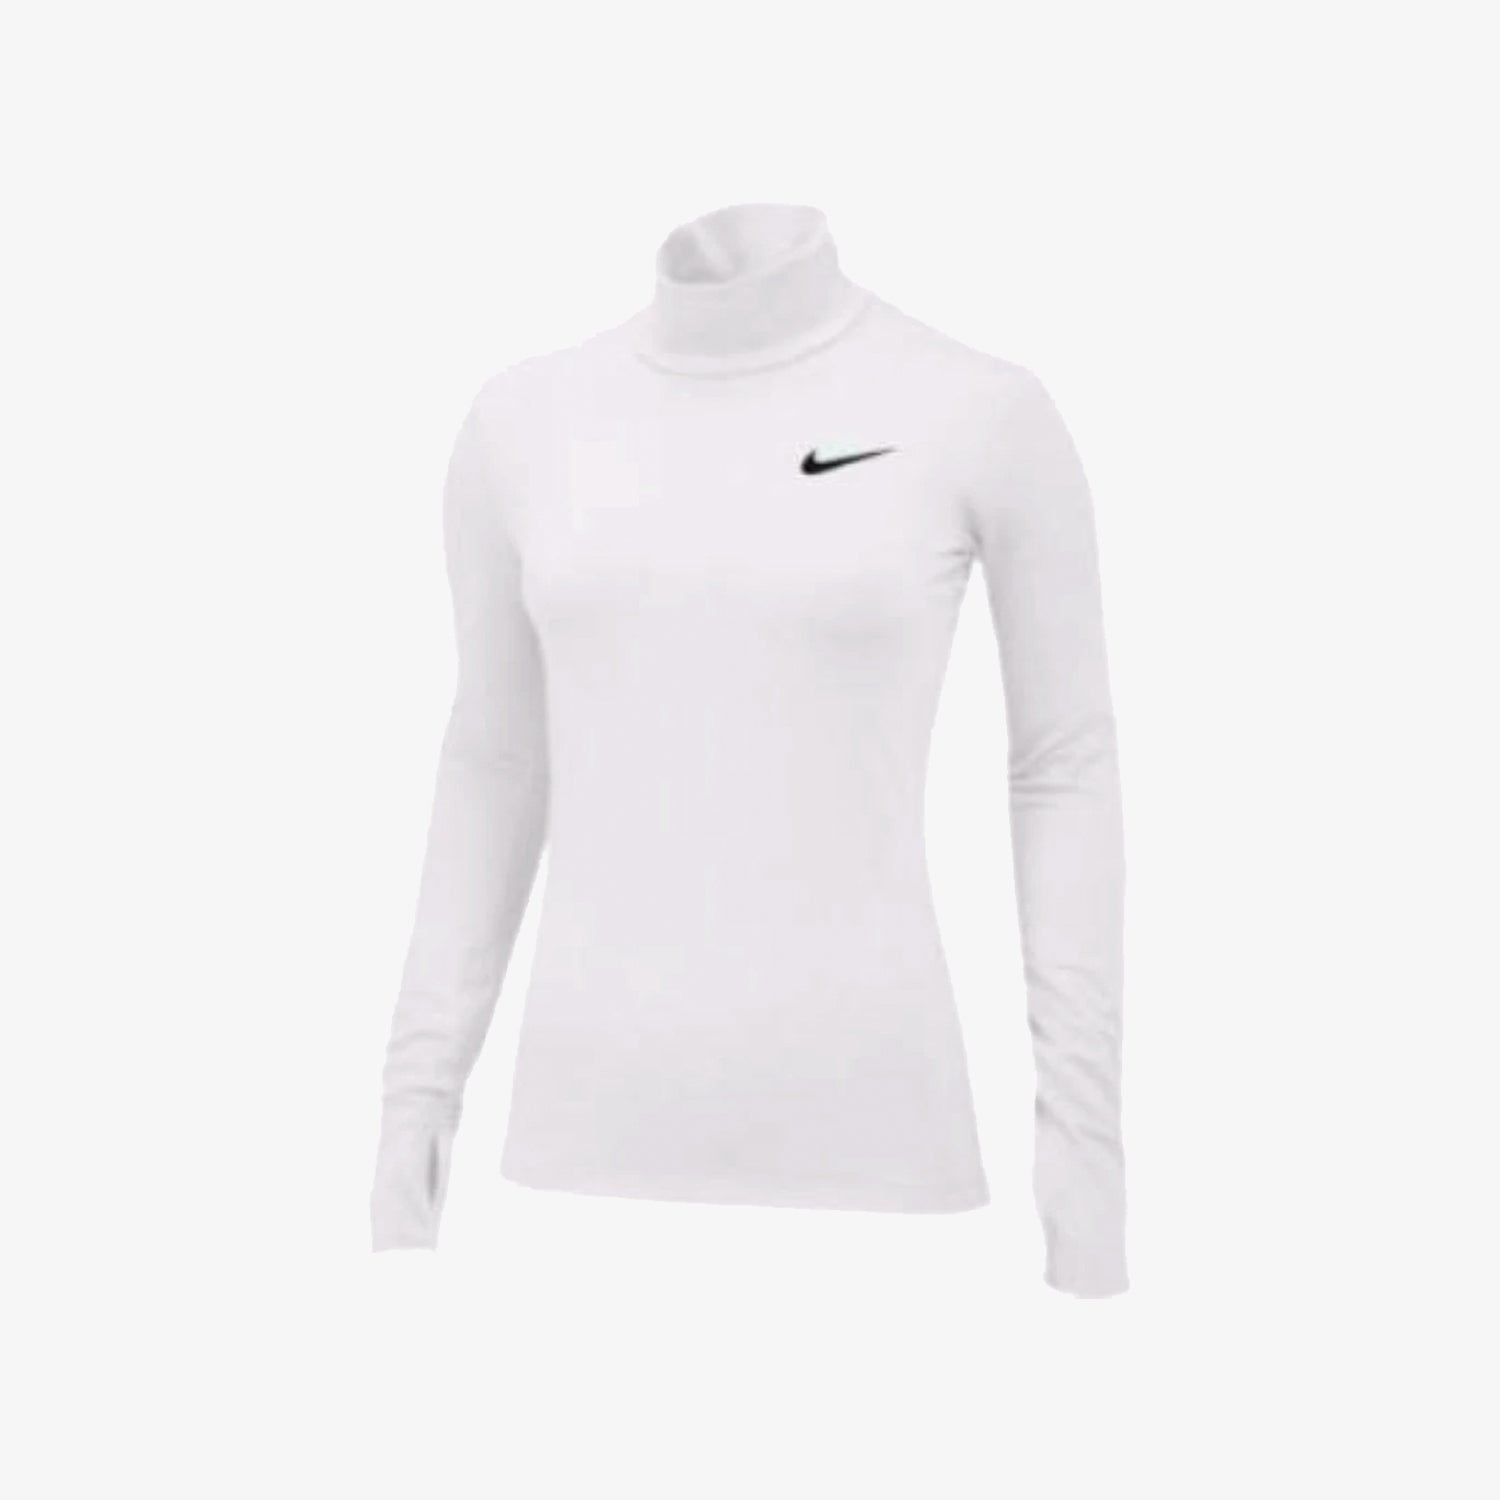 Women's Nike Pro Hyperwarm Mock